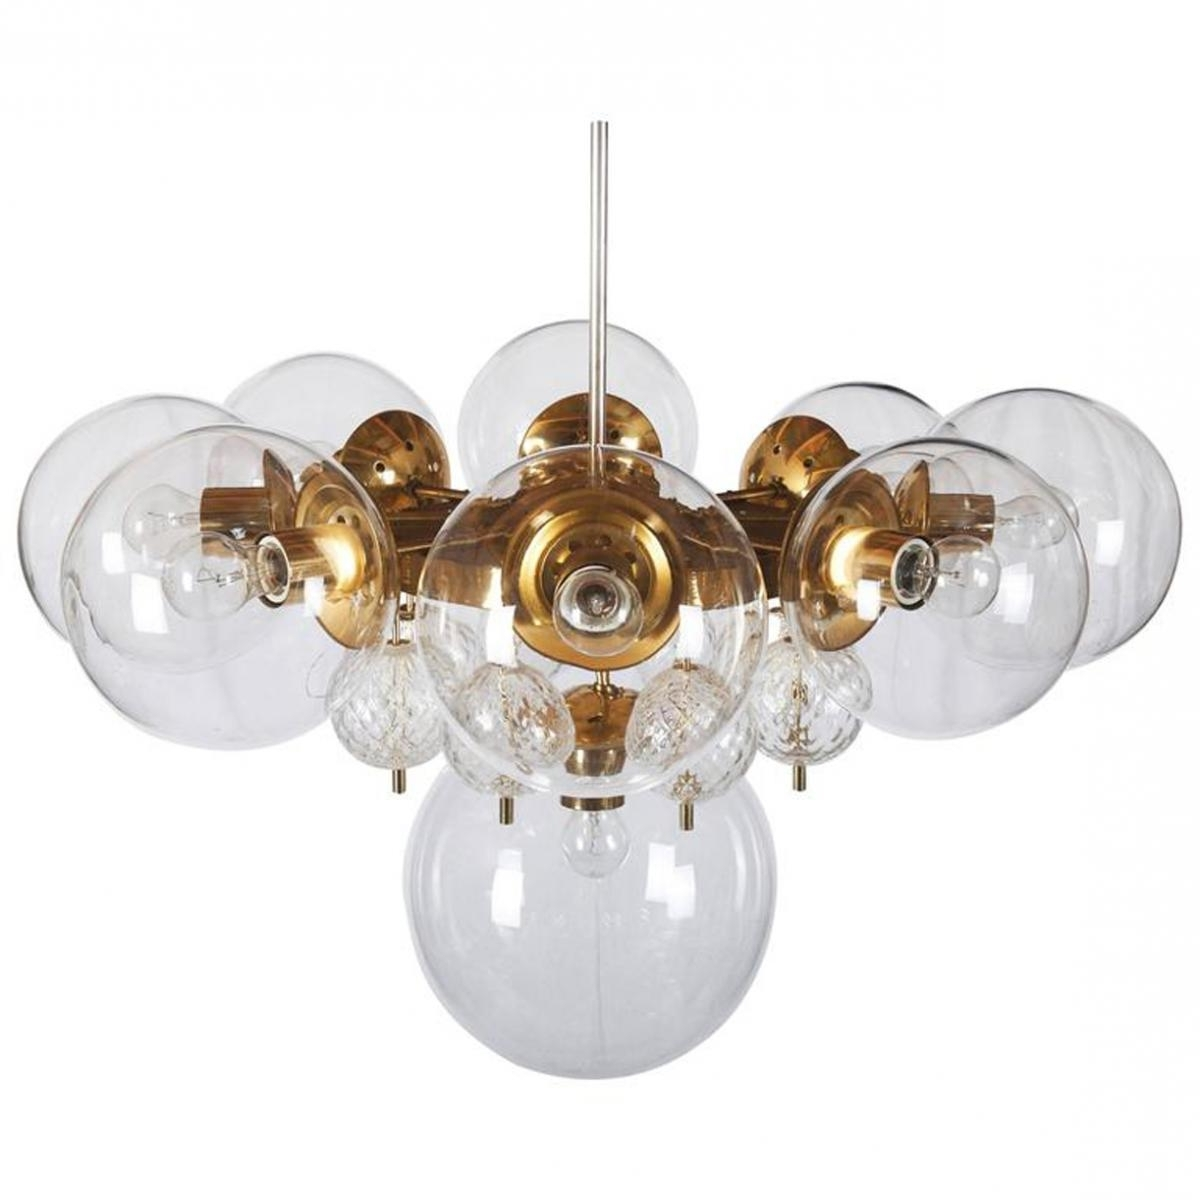 Large Brass Chandelier With Crystal Globes From Kamenicky Senov In Preferred Large Brass Chandelier (View 10 of 20)